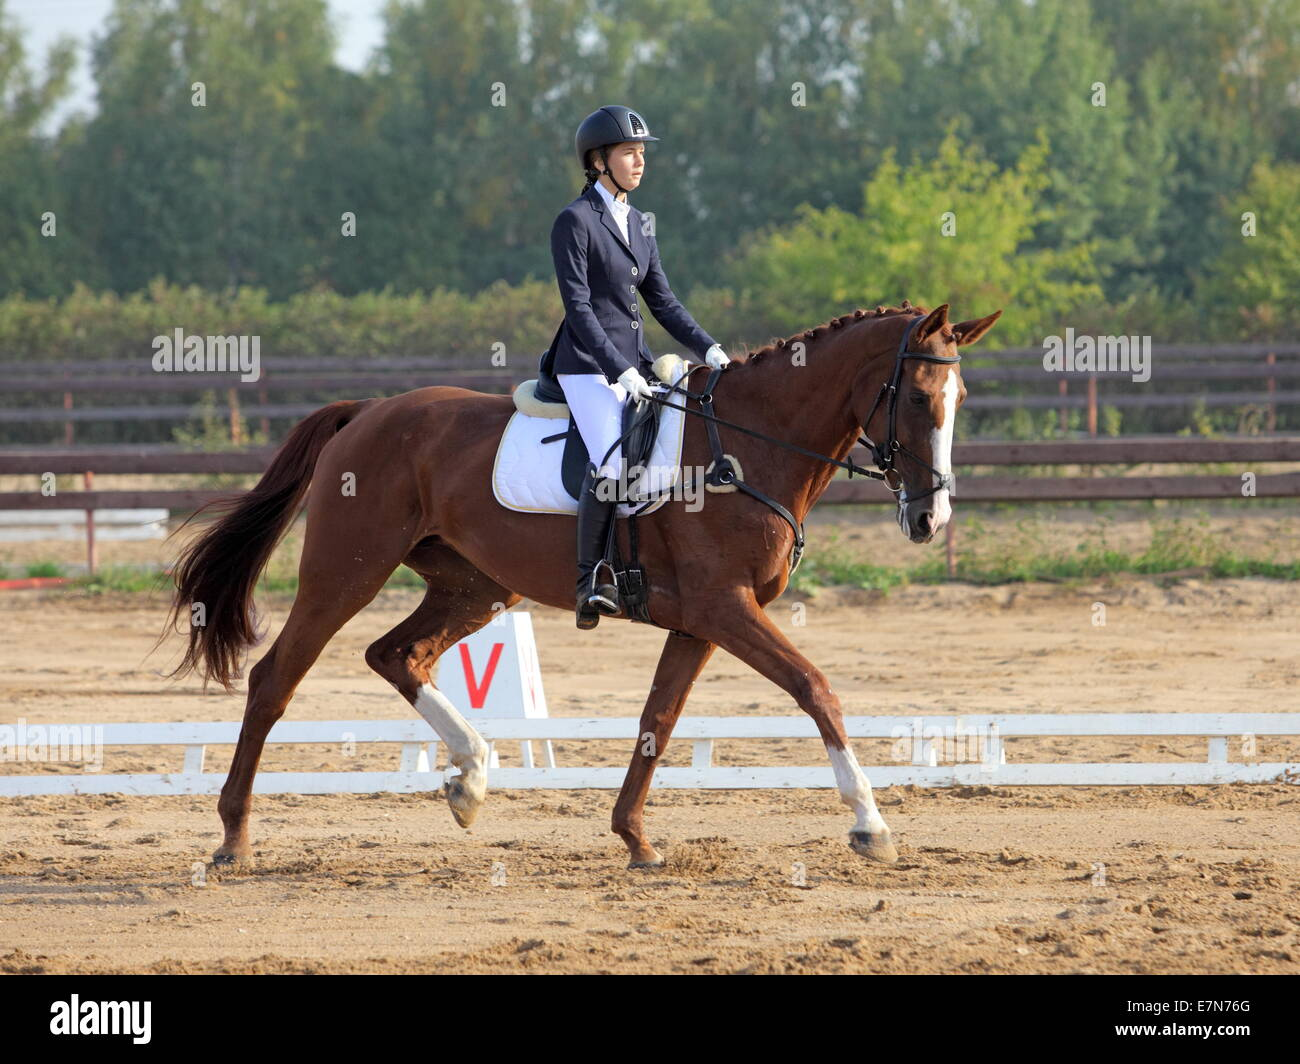 Female dressage rider on a Bavarian breed horse Stock Photo